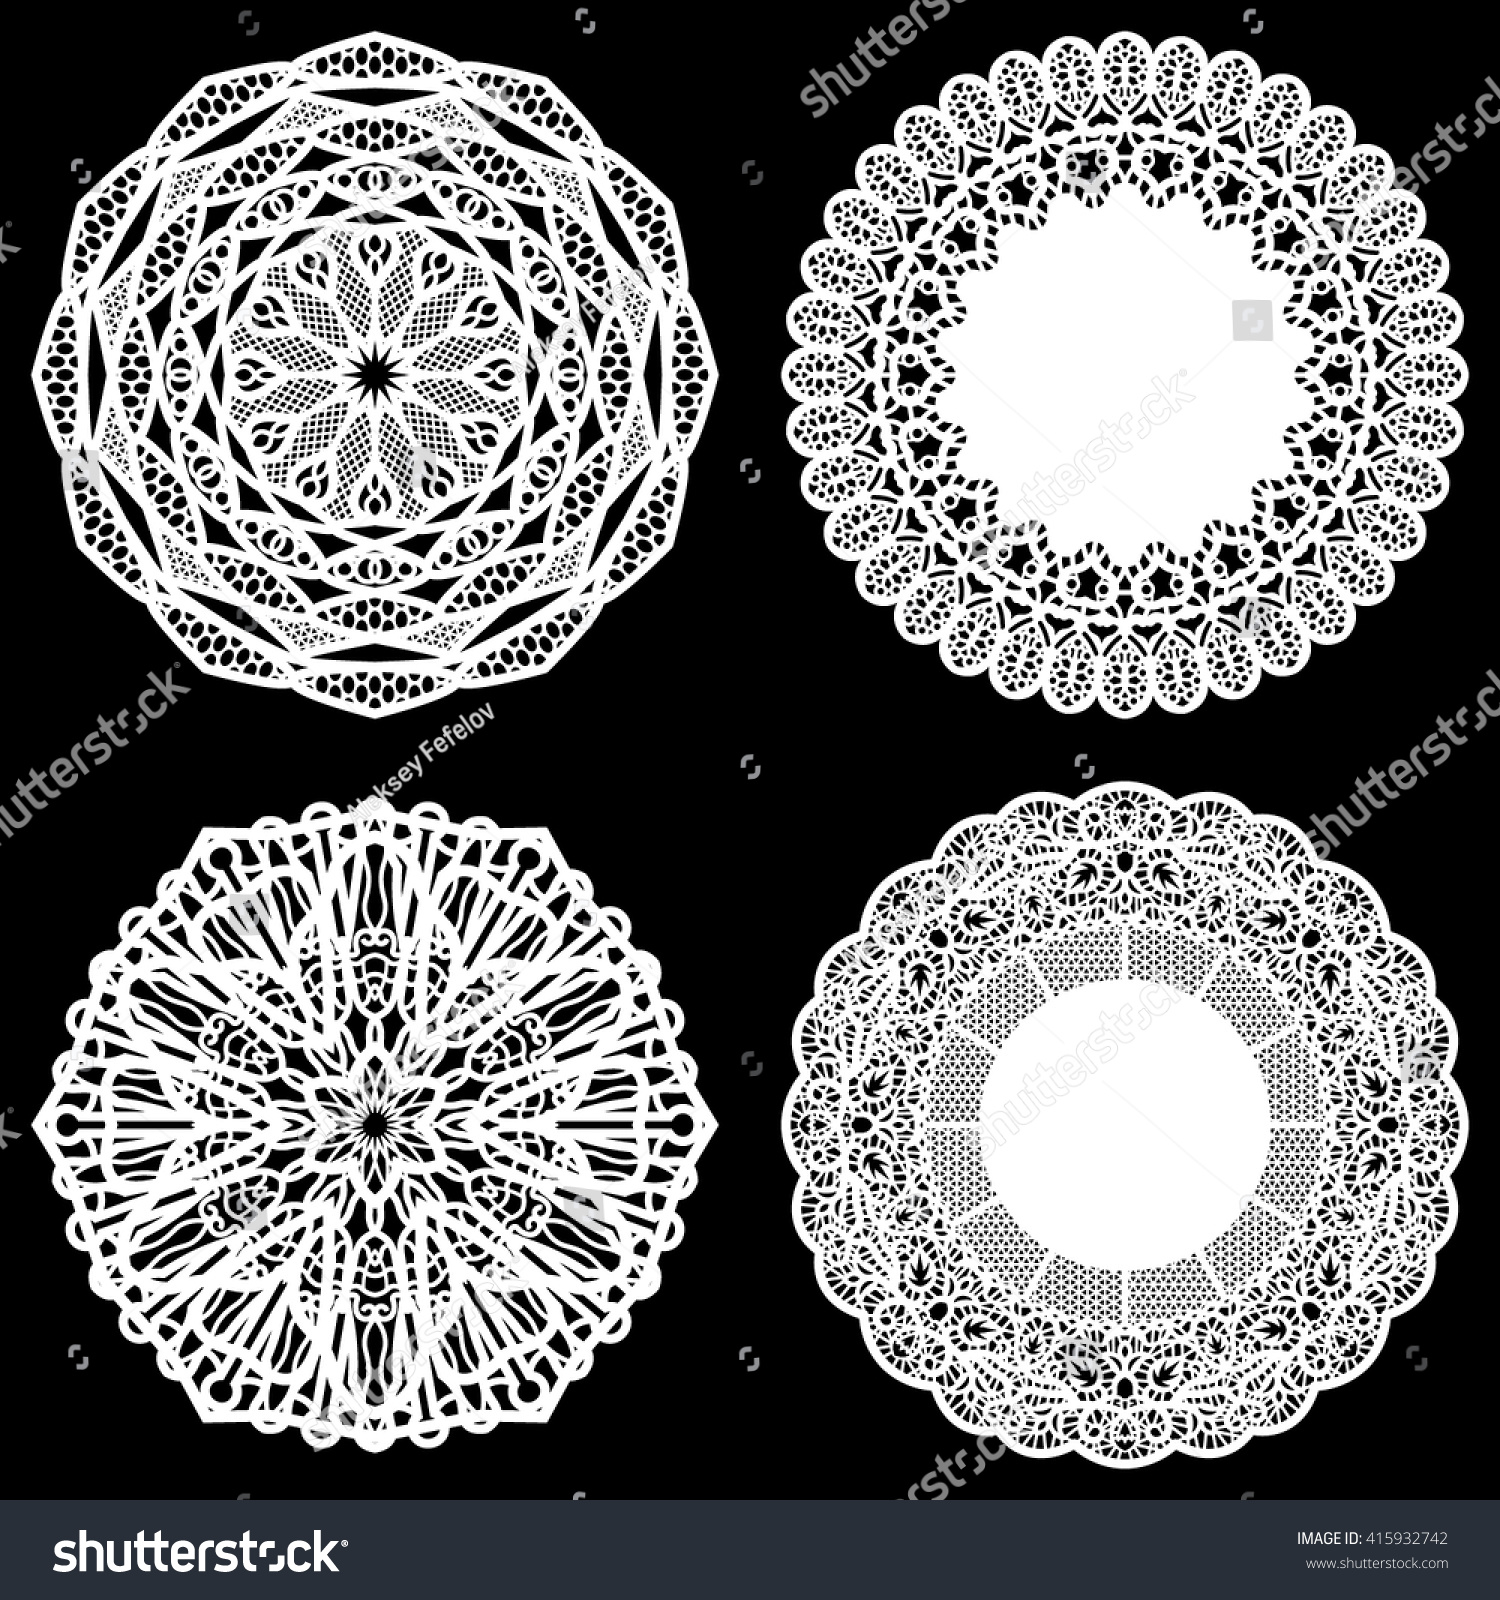 Set of design elements lace round paper doily paper snowflake greeting element package template for cutting vector illustrations